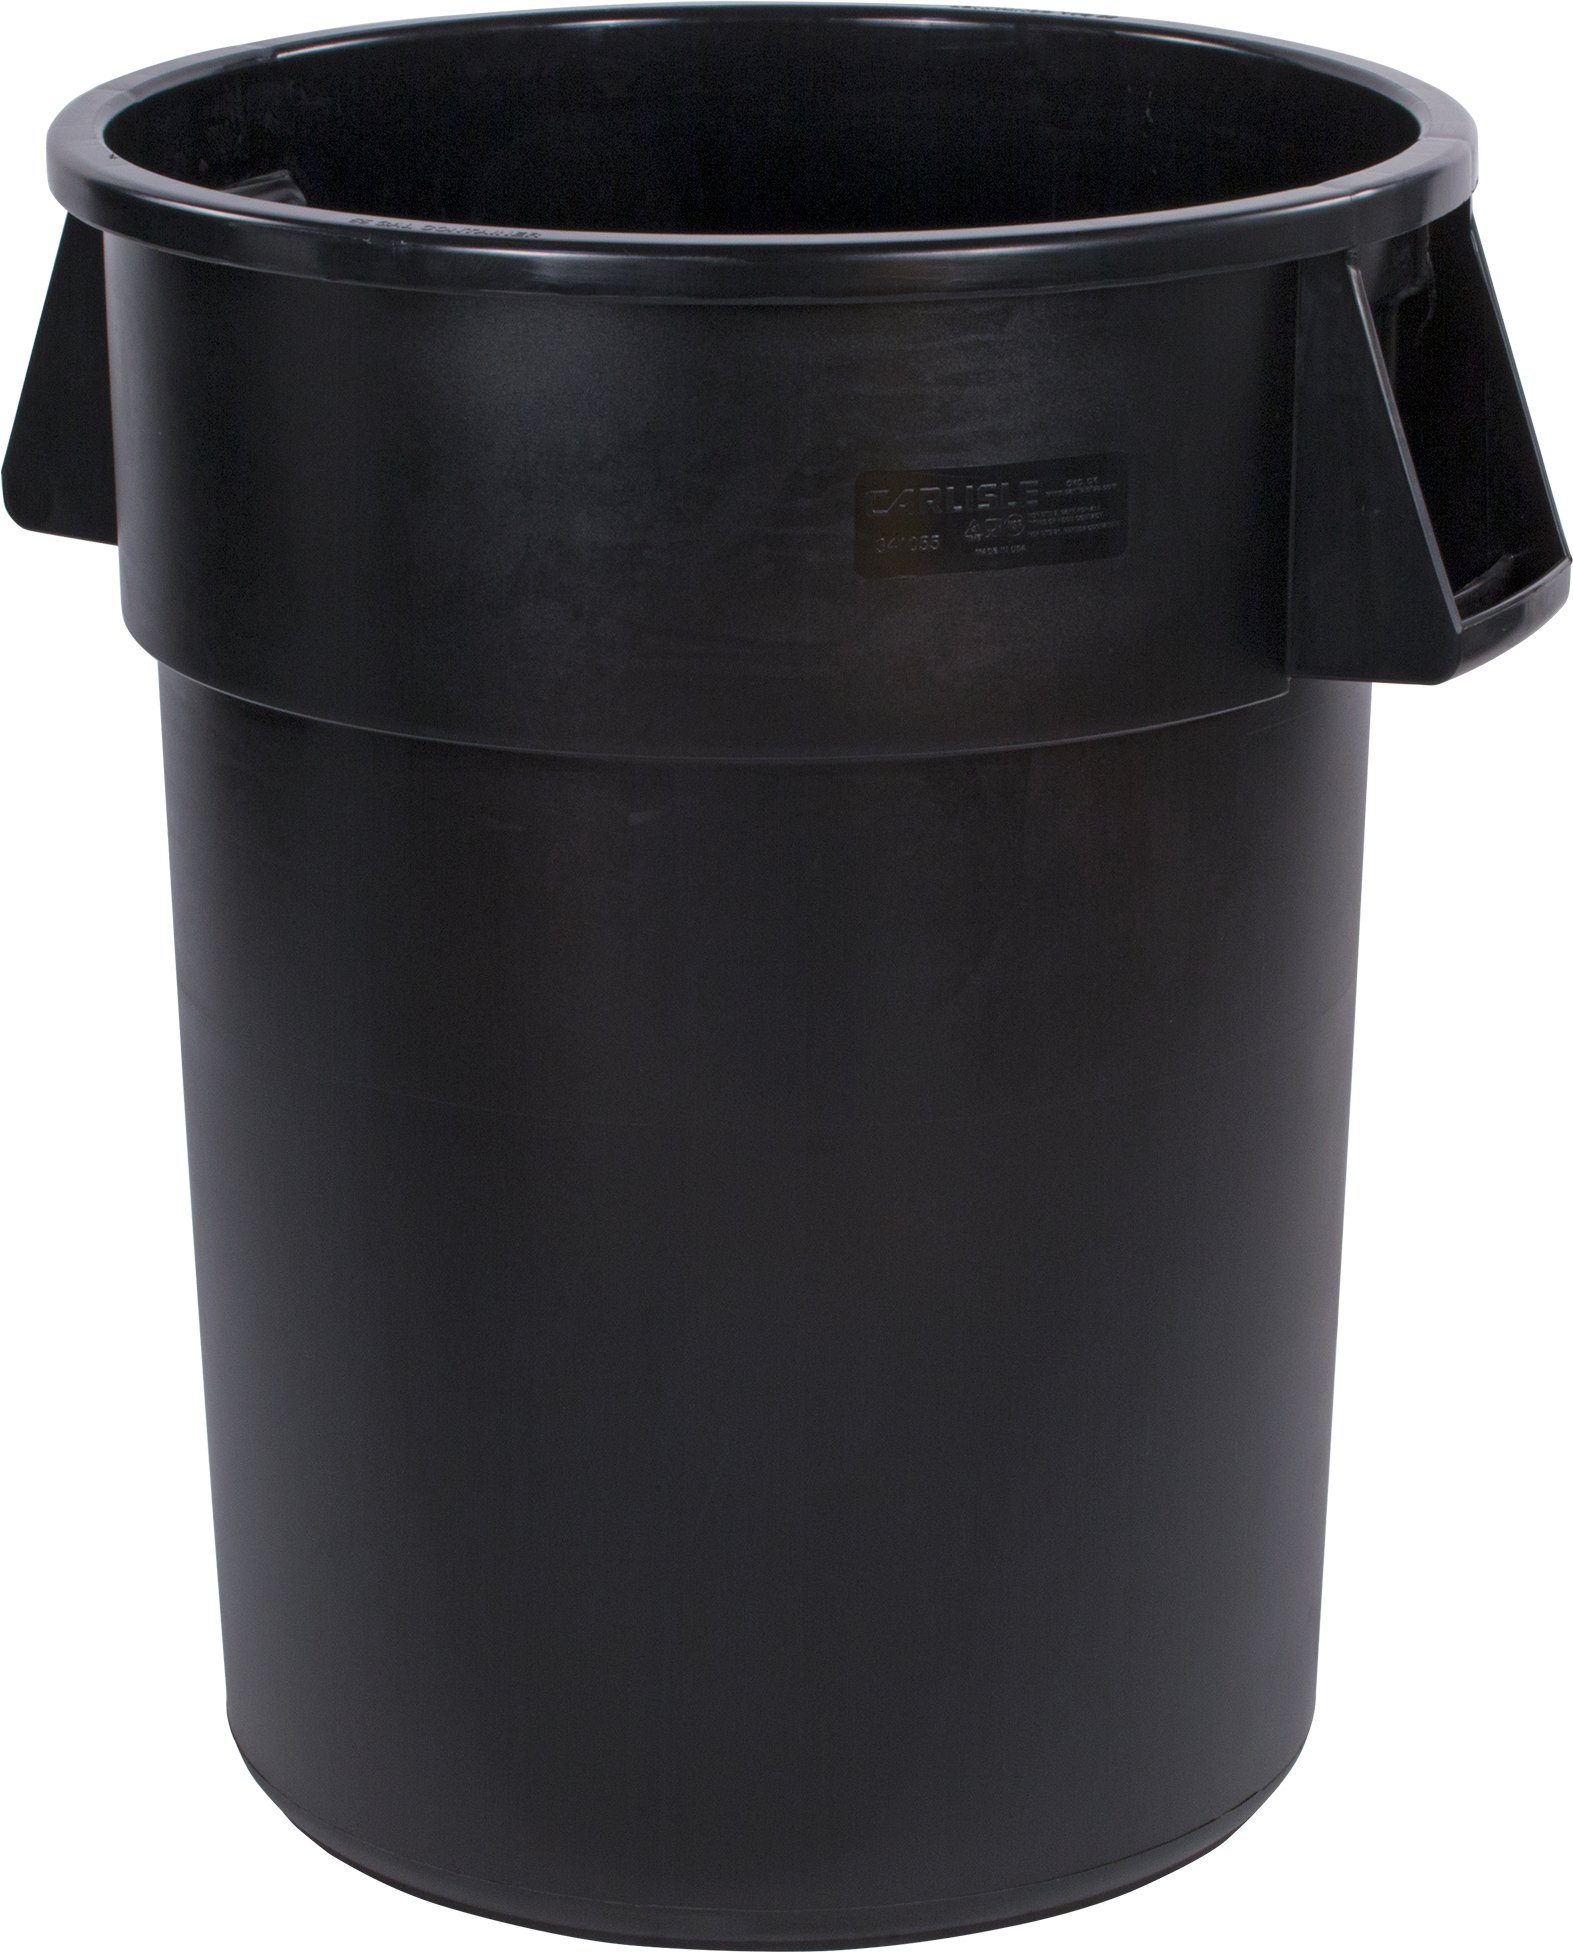 Carlisle 34105503 Bronco Round Waste Container Only, 55 Gallon, Black (Pack of 2)